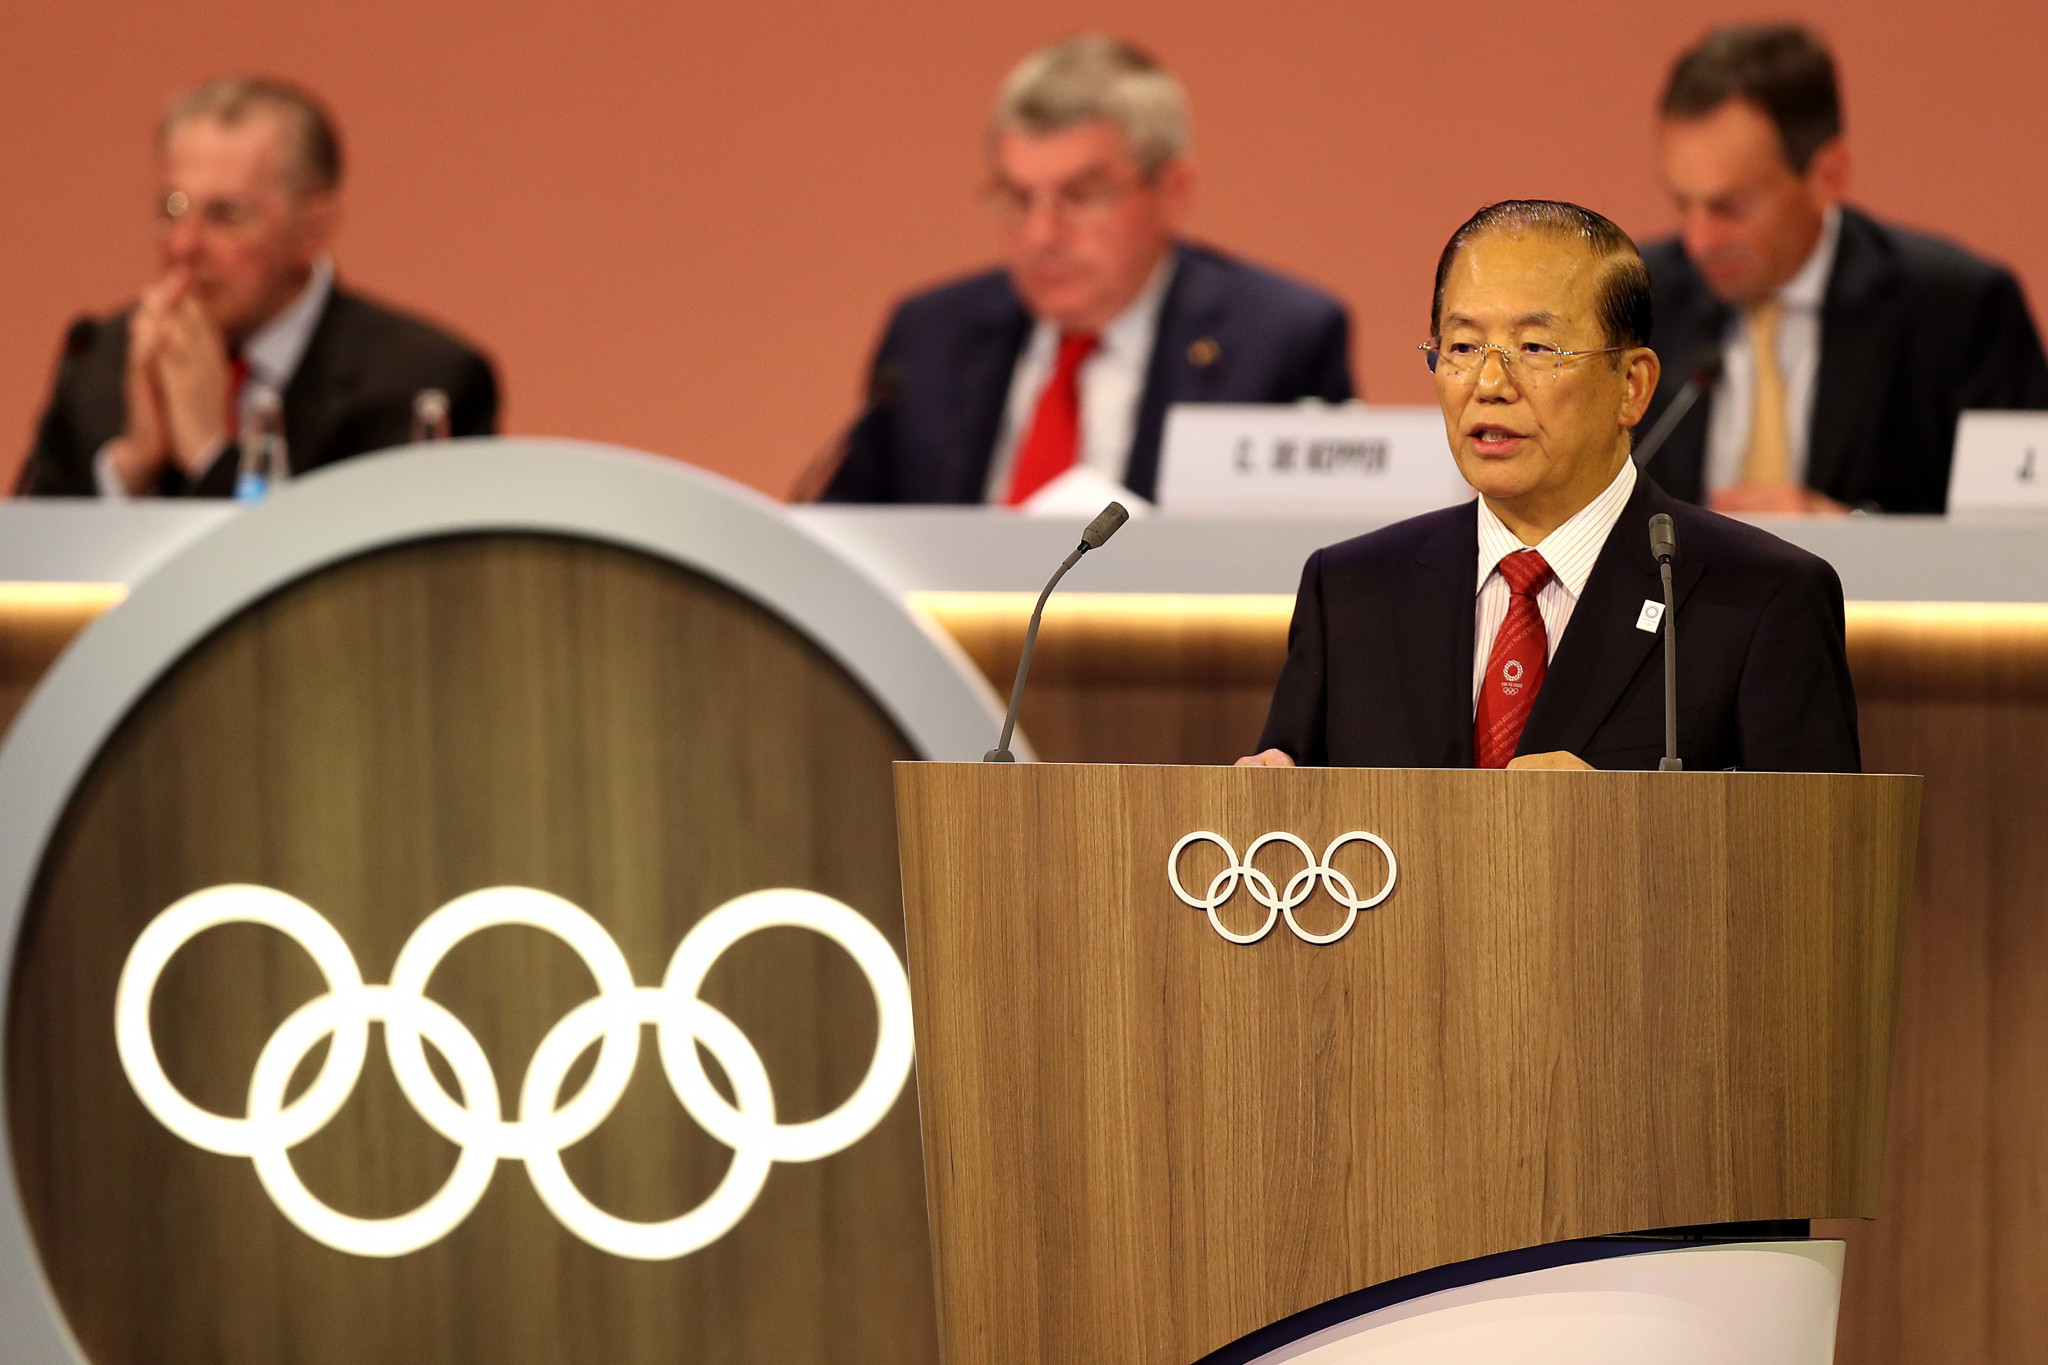 Tokyo 2020 chief executive Toshirō Mutō recently acknowledged the pandemic could impact the Games next year ©Getty Images